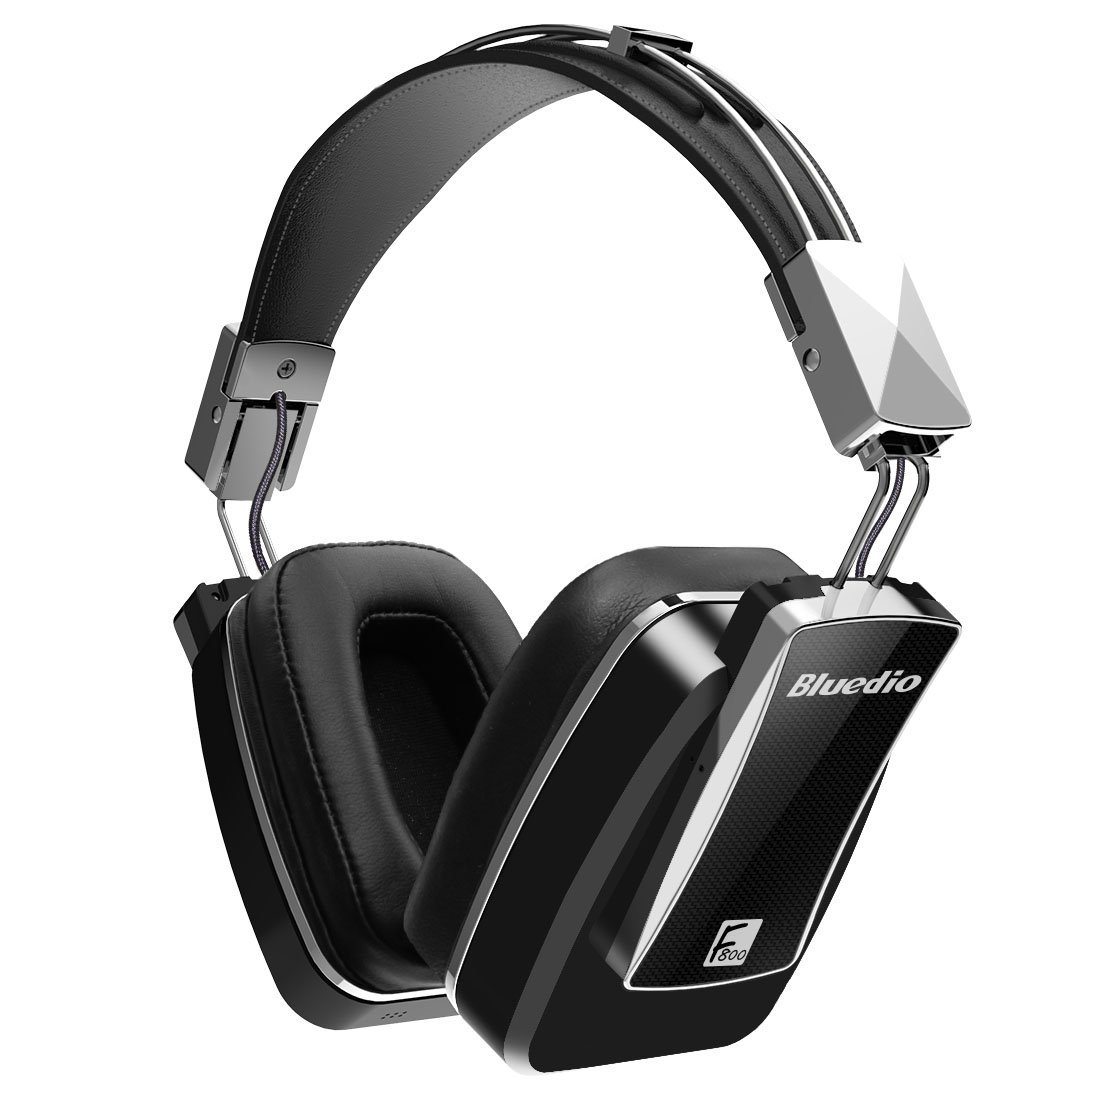 Bluedio F800 Active Noise Cancelling Foldable Over-ear Wireless Bluetooth Headphones with Mic(Black) sony mdrzx310ap over head headphones with mic